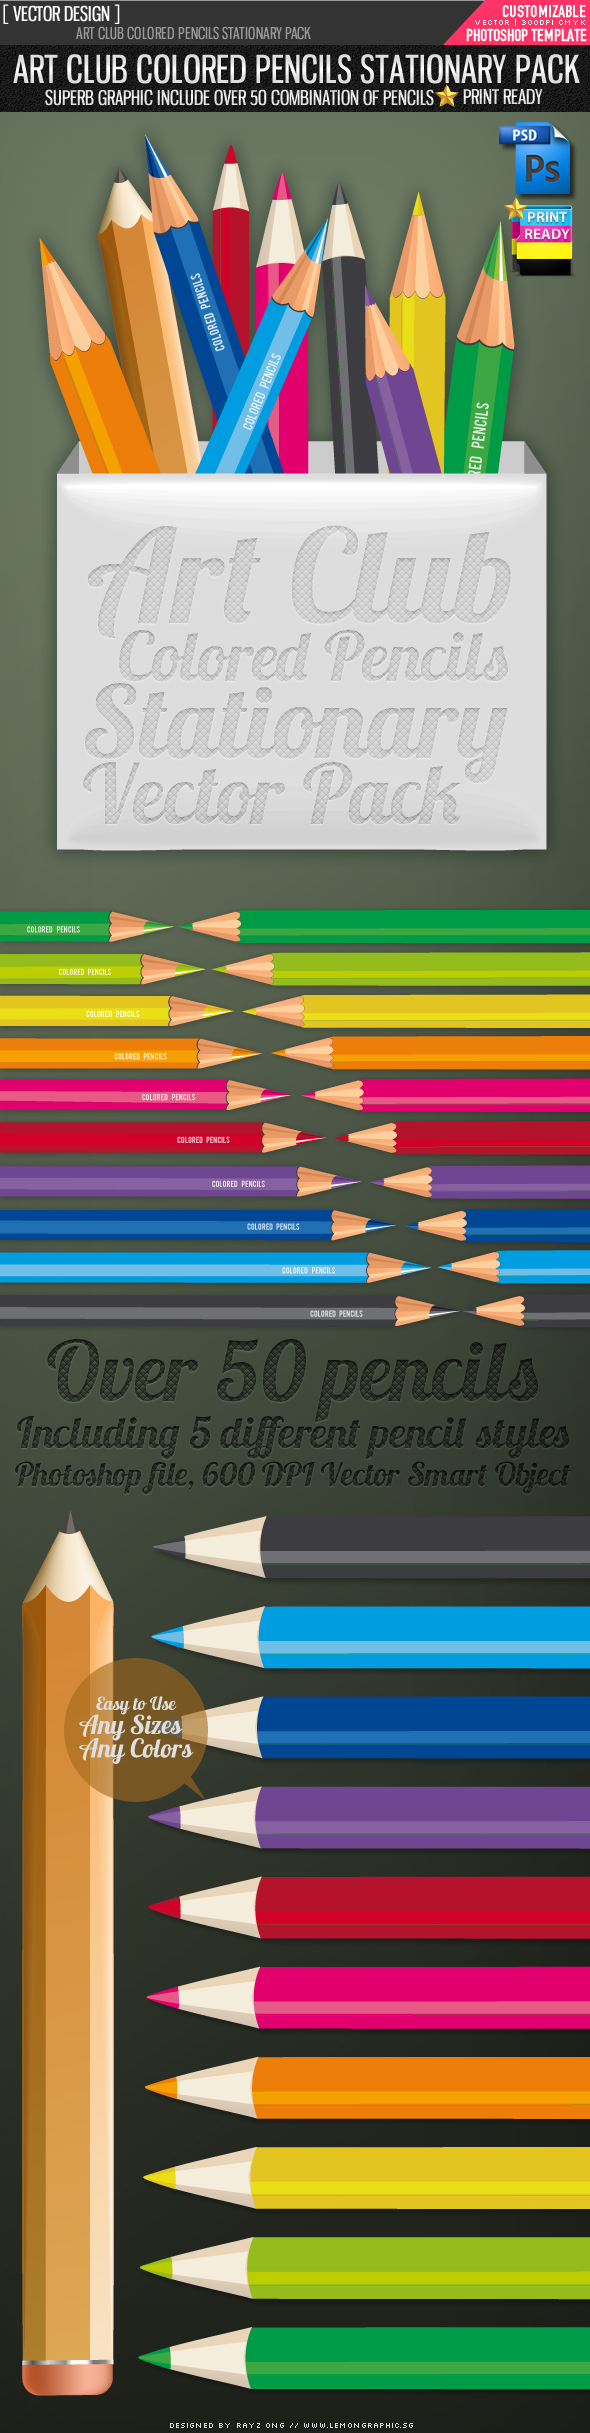 Art club Colored pencils vector pack